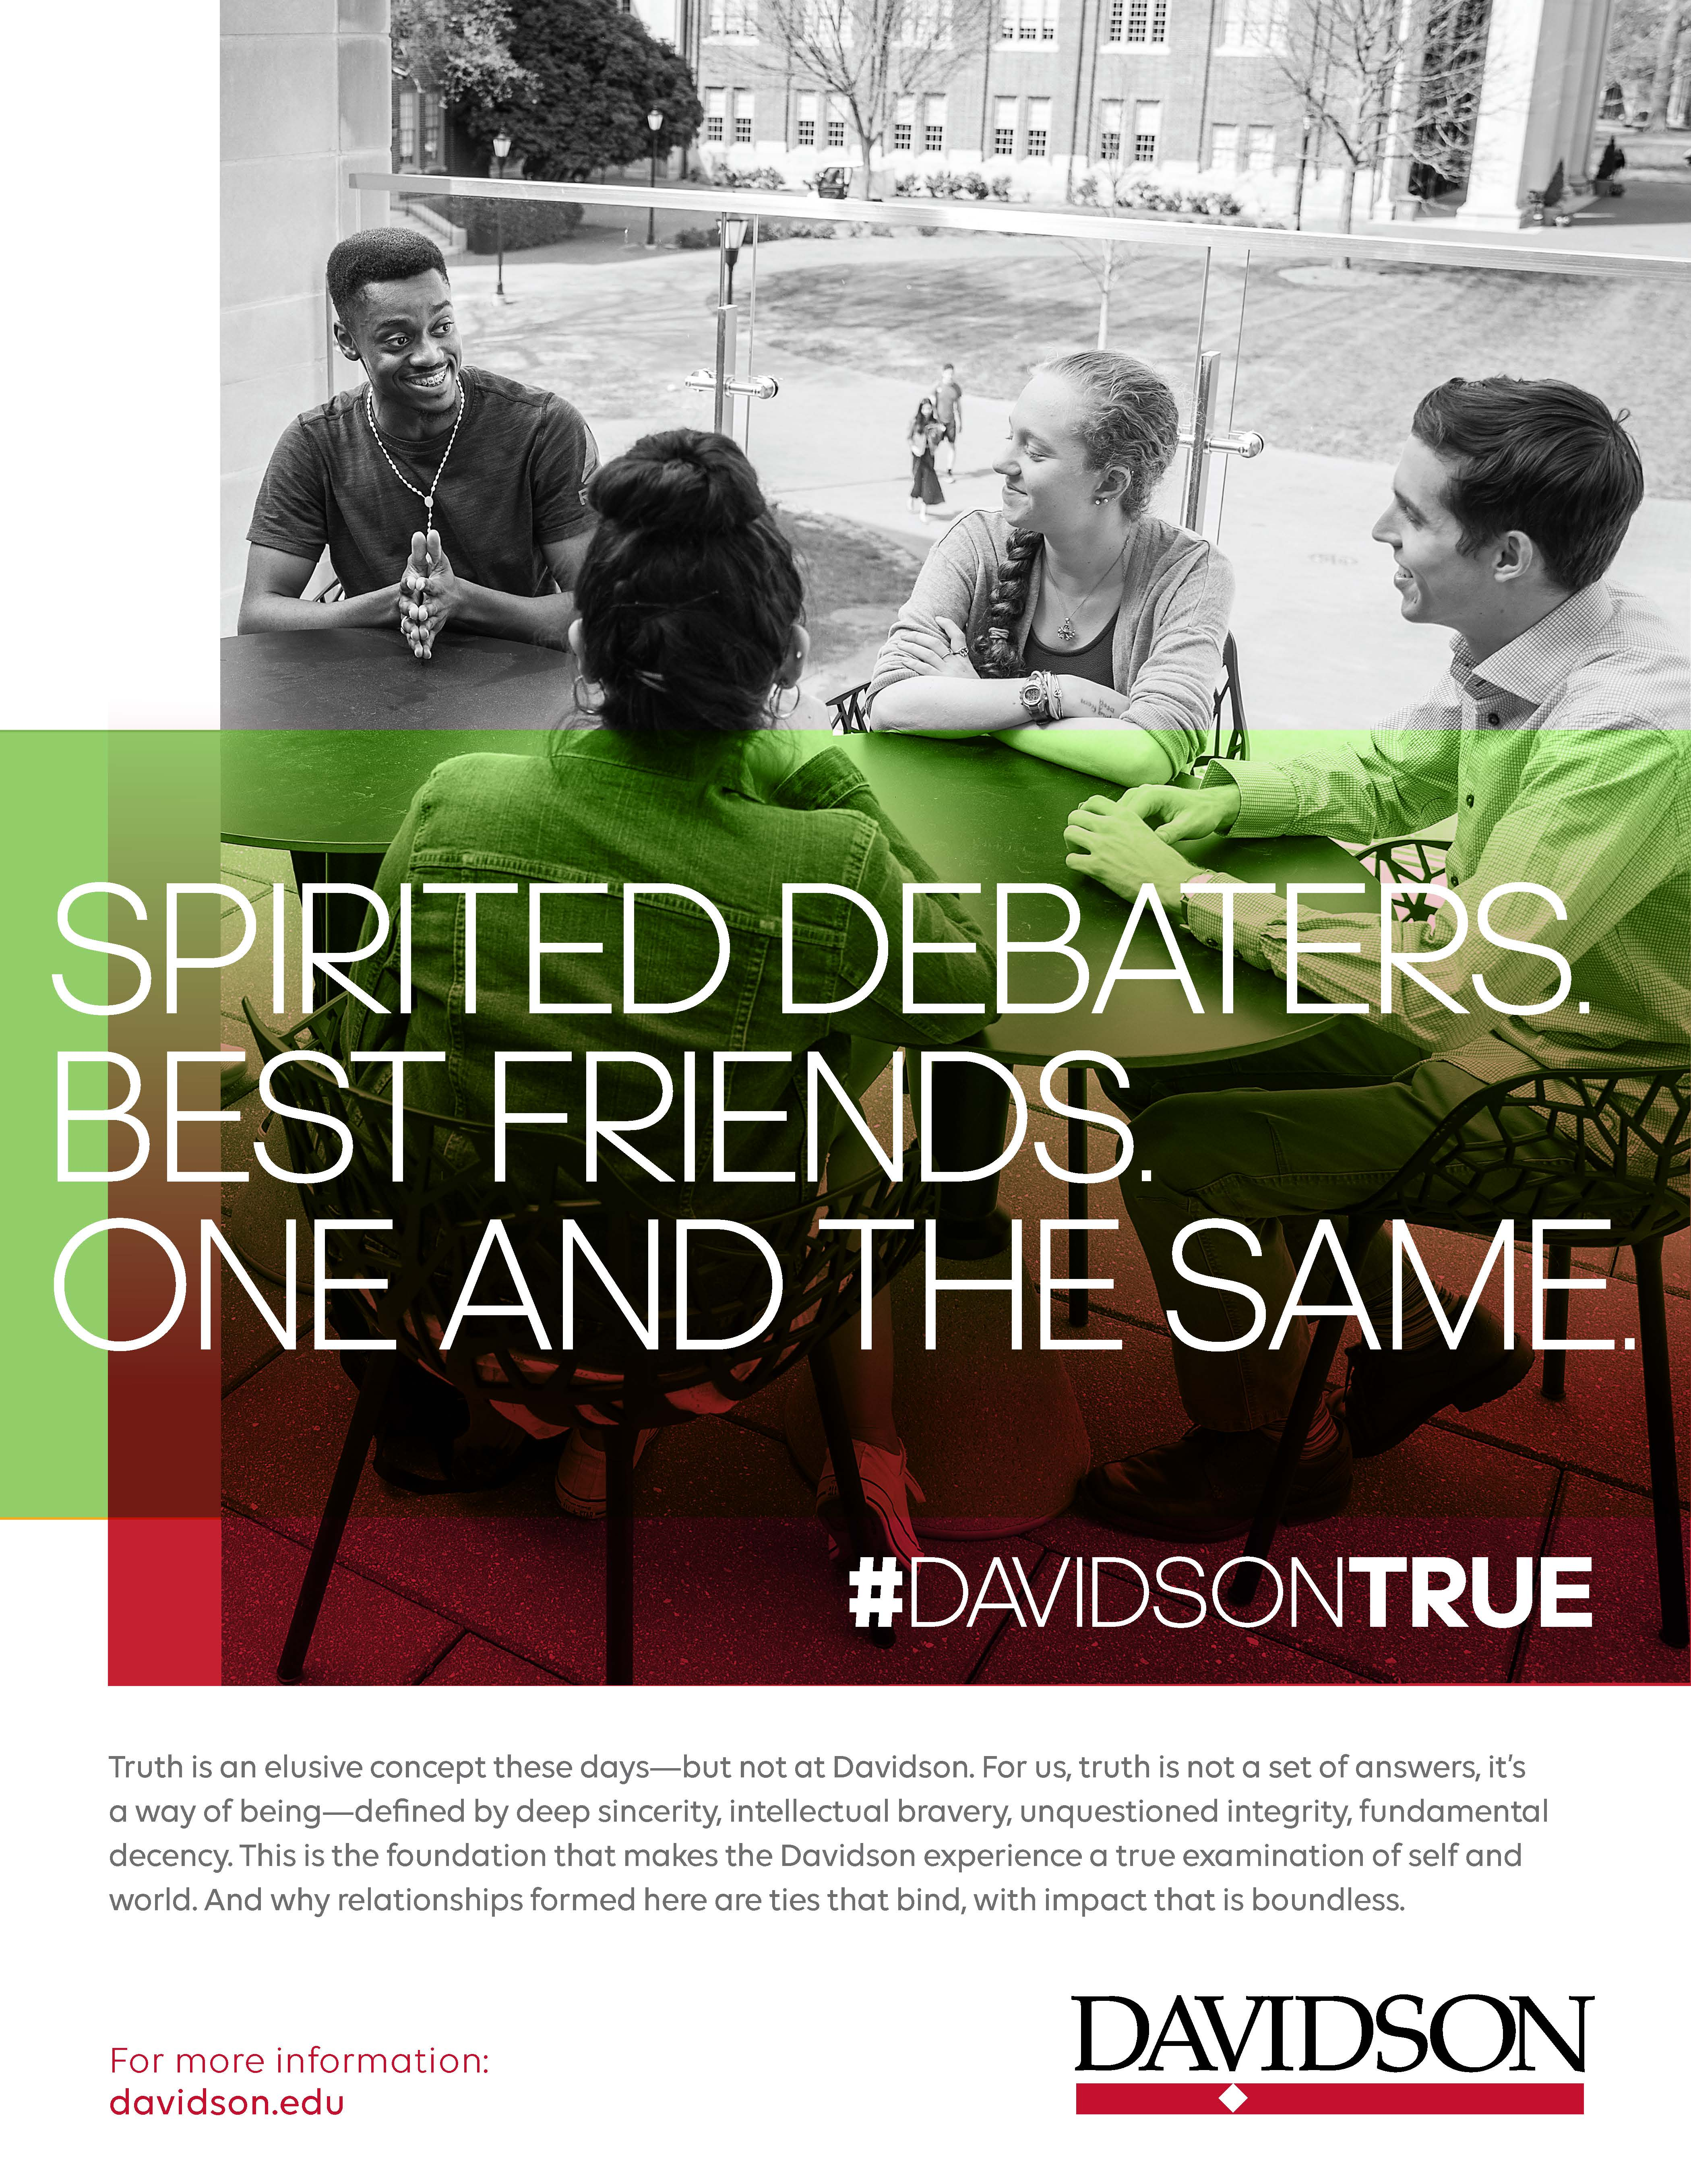 """Students chatting with overlaid """"Spirited debaters. Best friends. One and the same."""""""